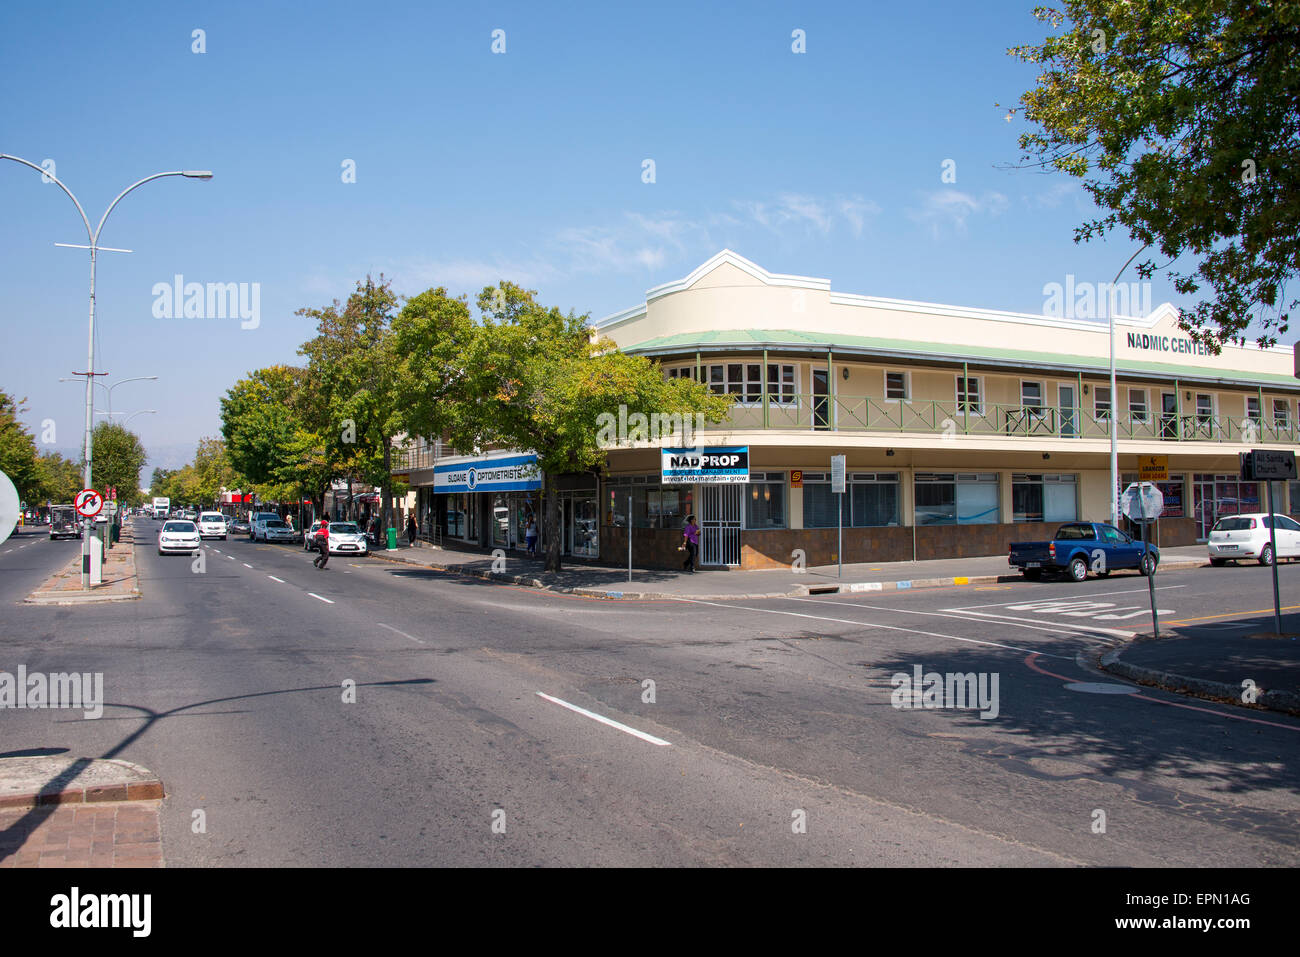 Main Street, Somerset West, Helderberg District, Cape Peninsula, Western Cape Province, Republic of South Africa Stock Photo